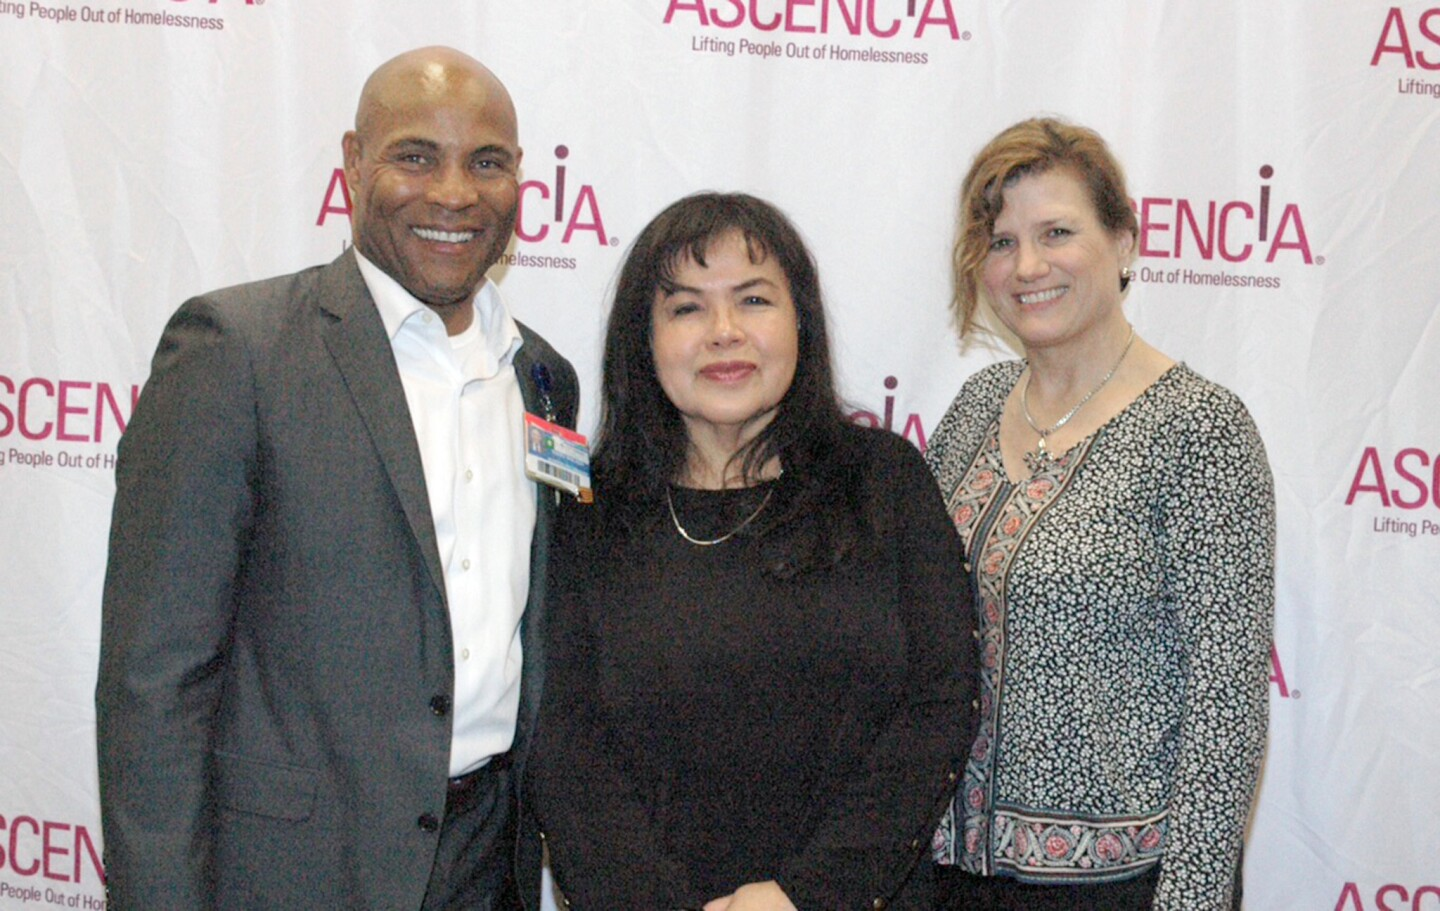 Board member Terry Walker, from left, Tippy Boonkokua, branch manager of HomeStreet Bank, and Ascencia Executive Director Natalie Profant Komuro.